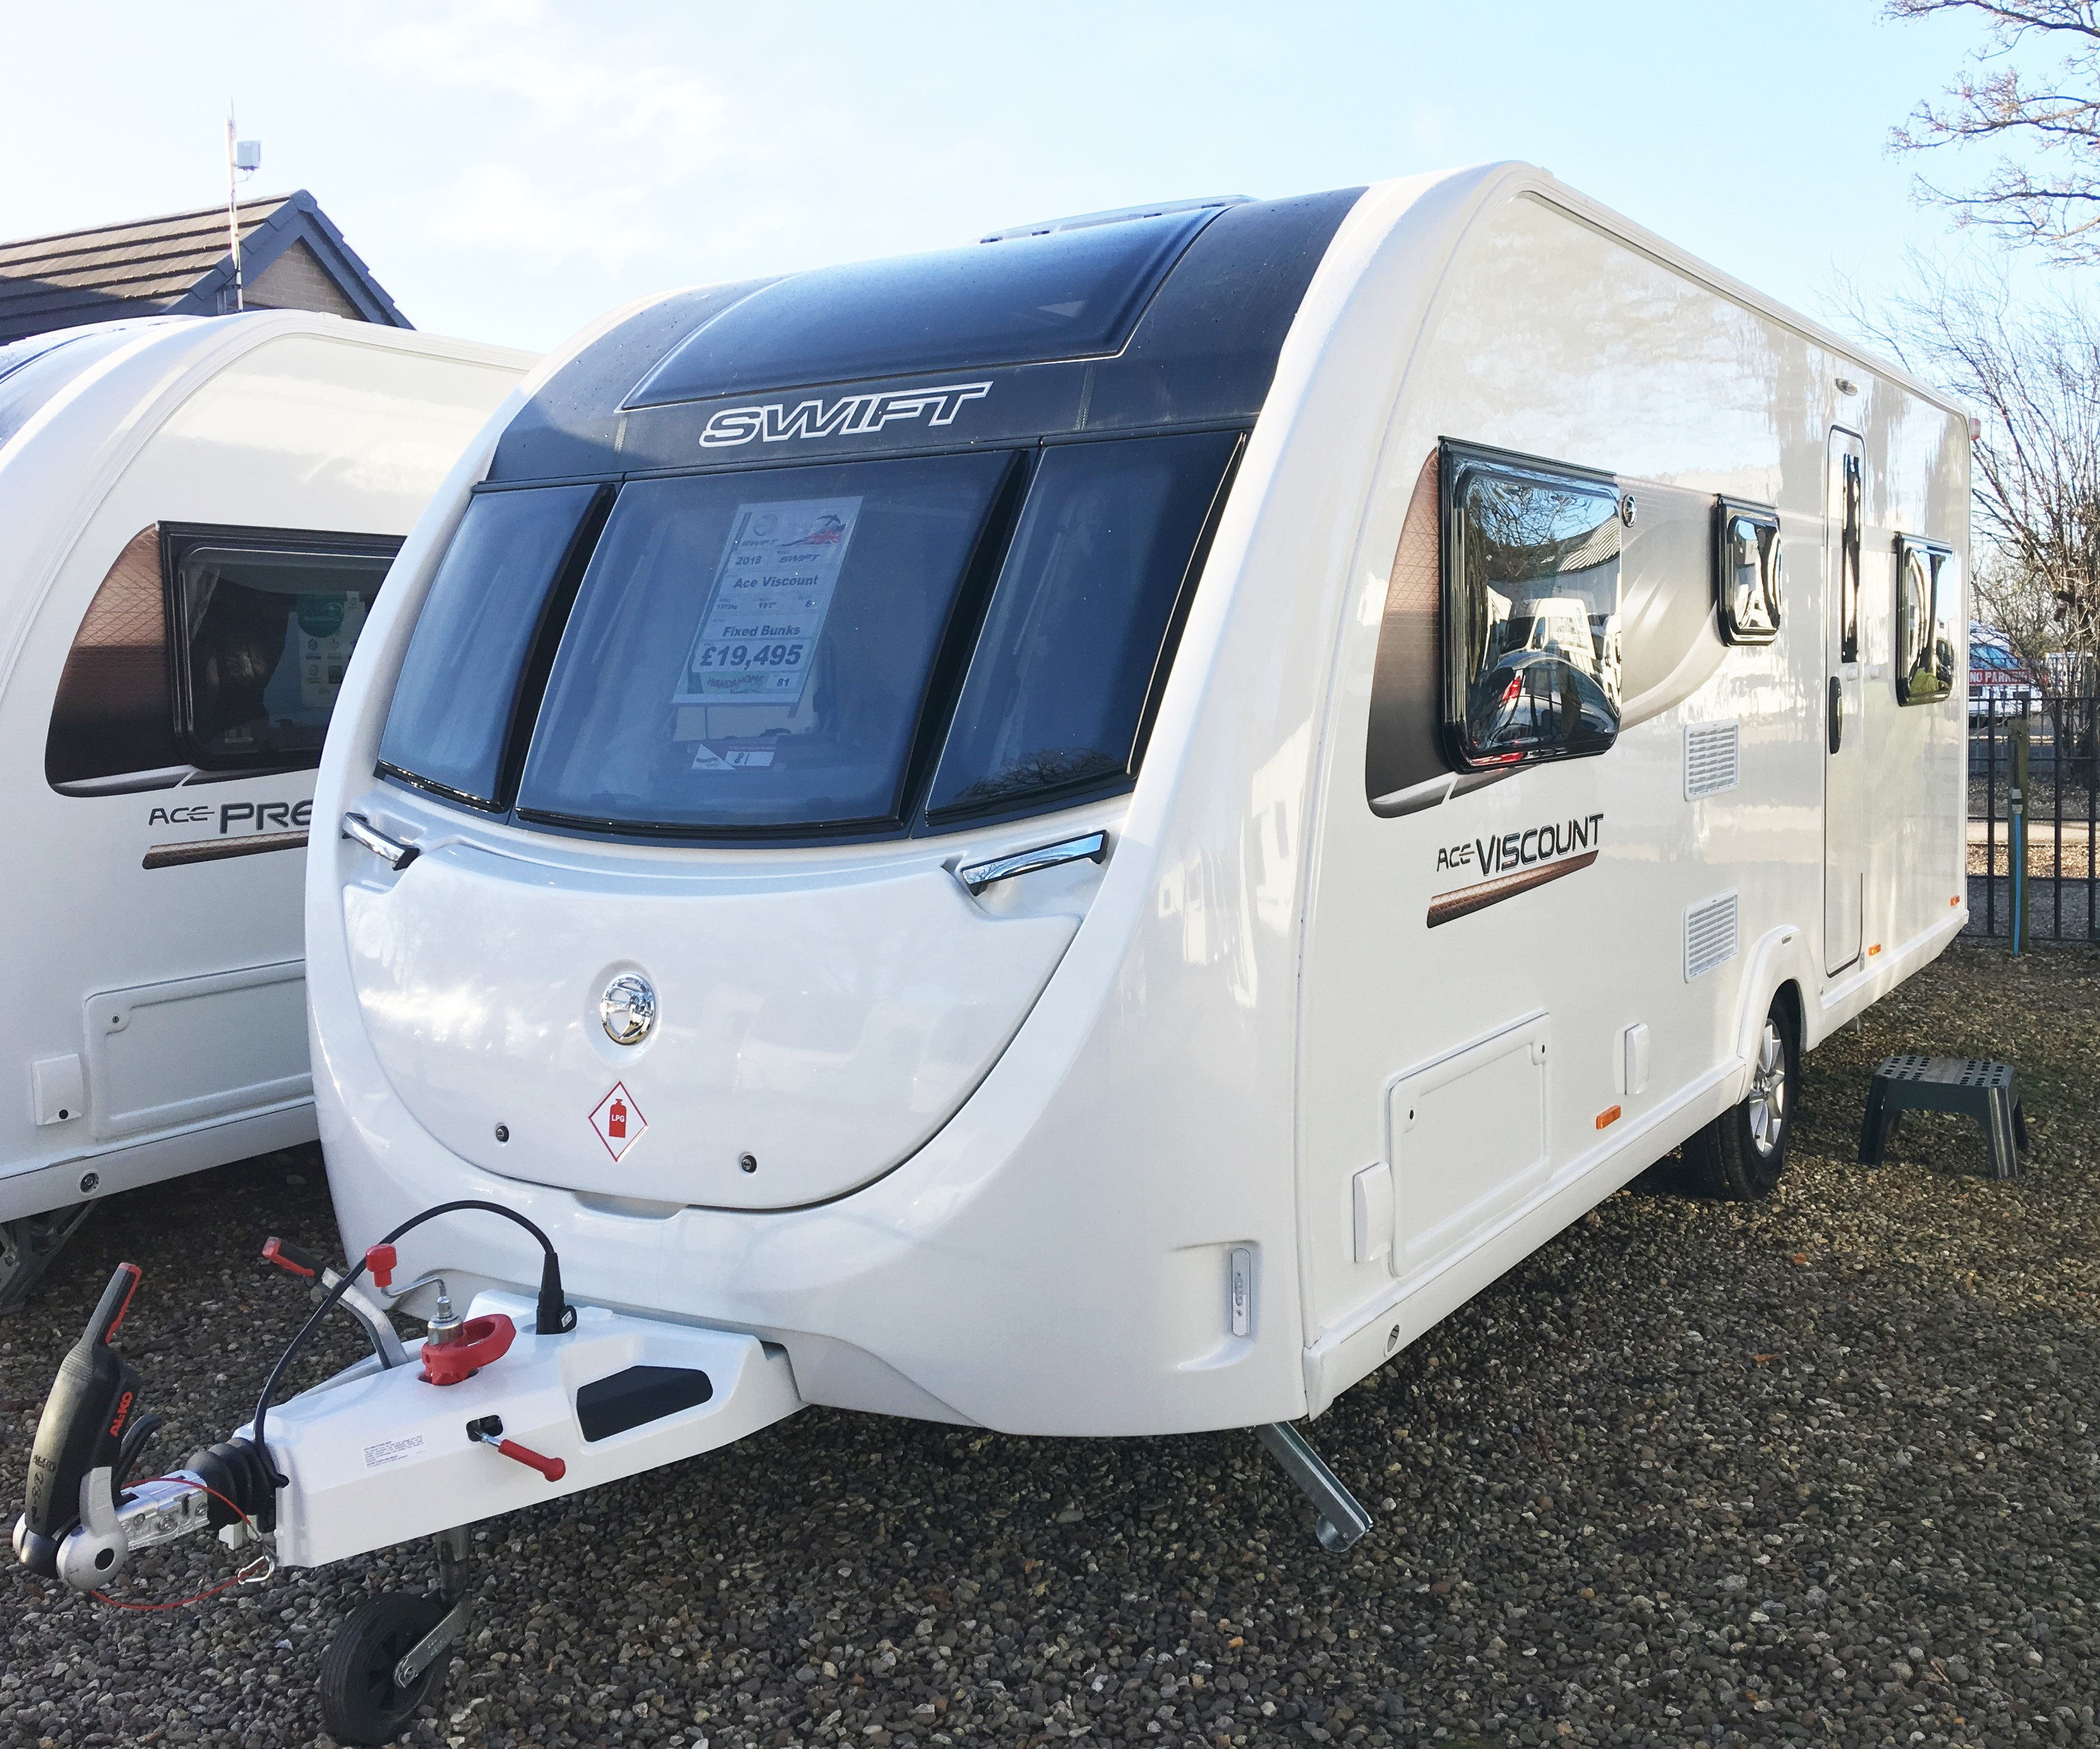 Viscount Caravan Spare Parts Online Wiring Diagram Swift Ace 2018 Wandahome Special Edition